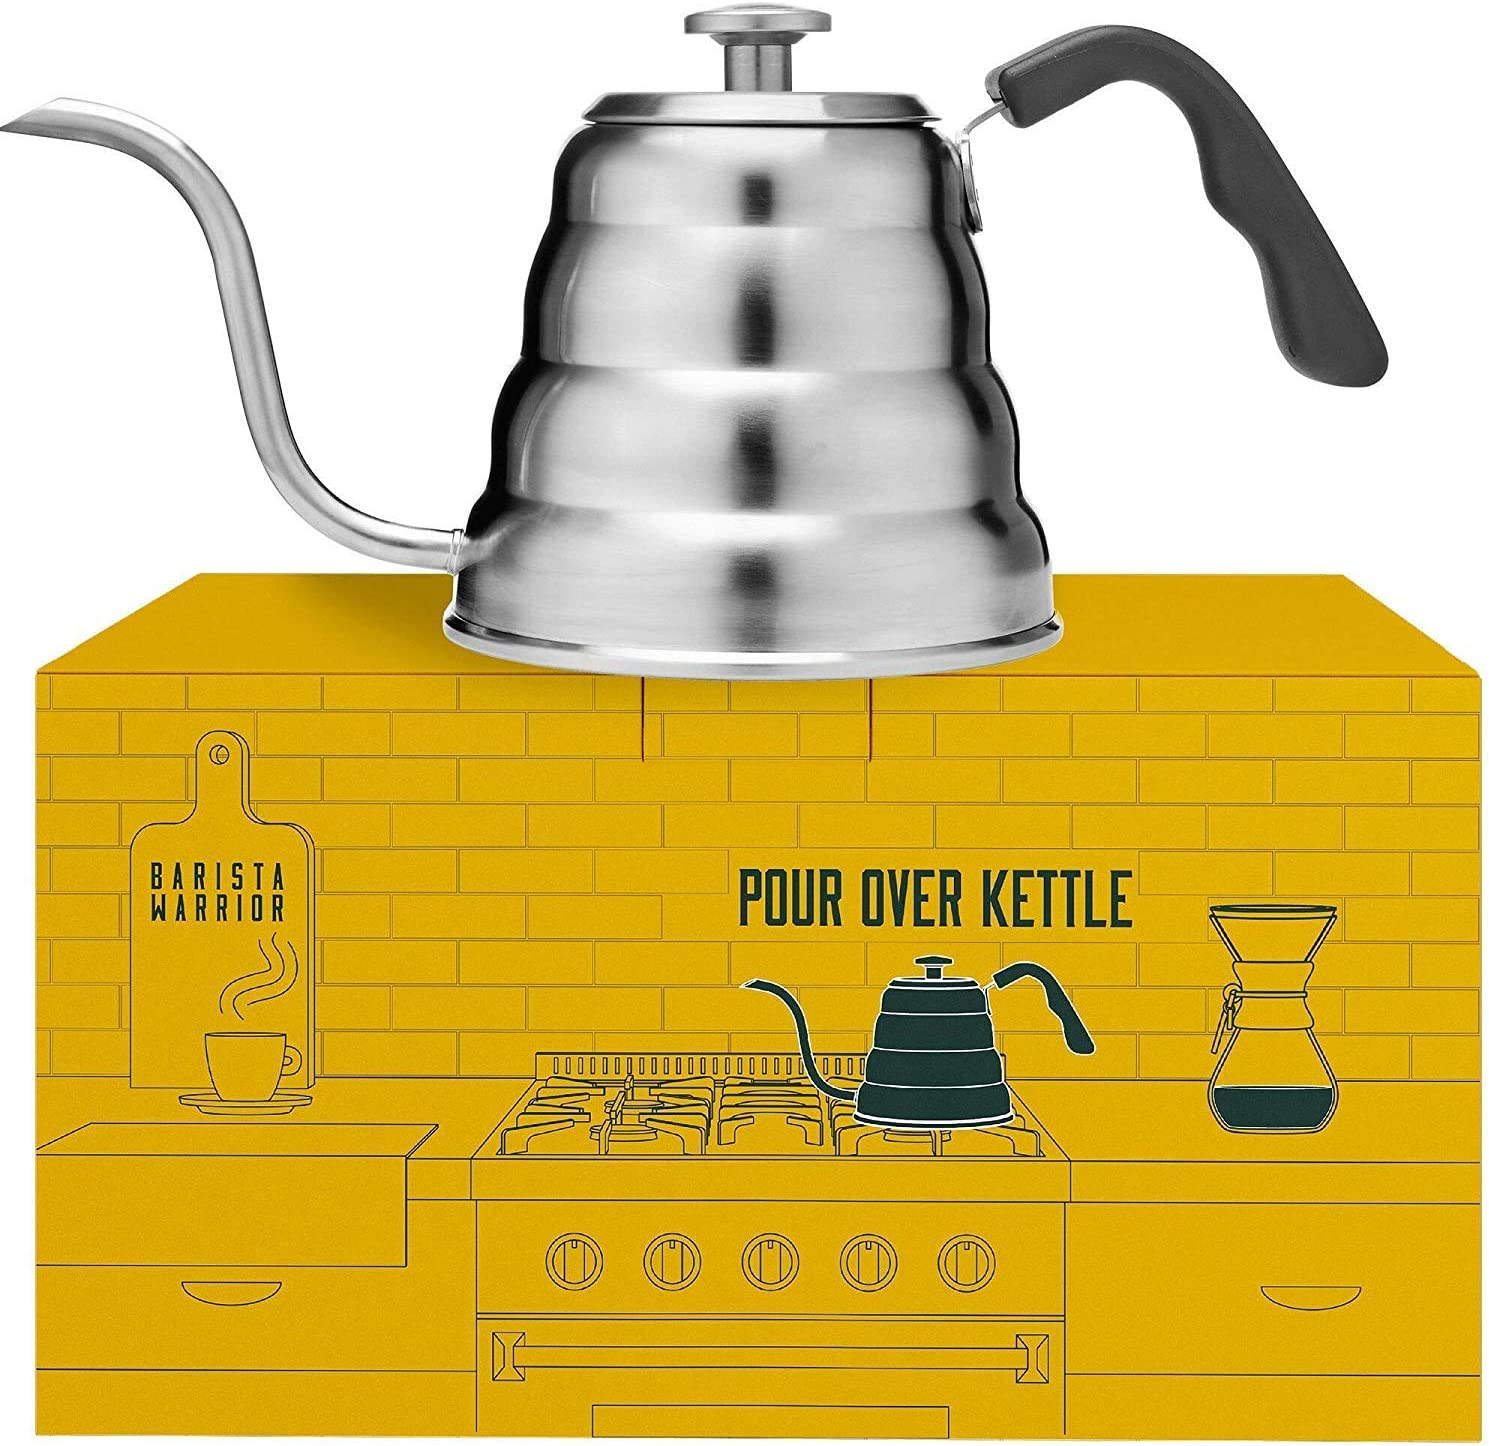 Pour Over Kettle with Thermometer – Gooseneck Kettle for Pour Over Coffee Kettle 1.2 Liter 40 fl oz